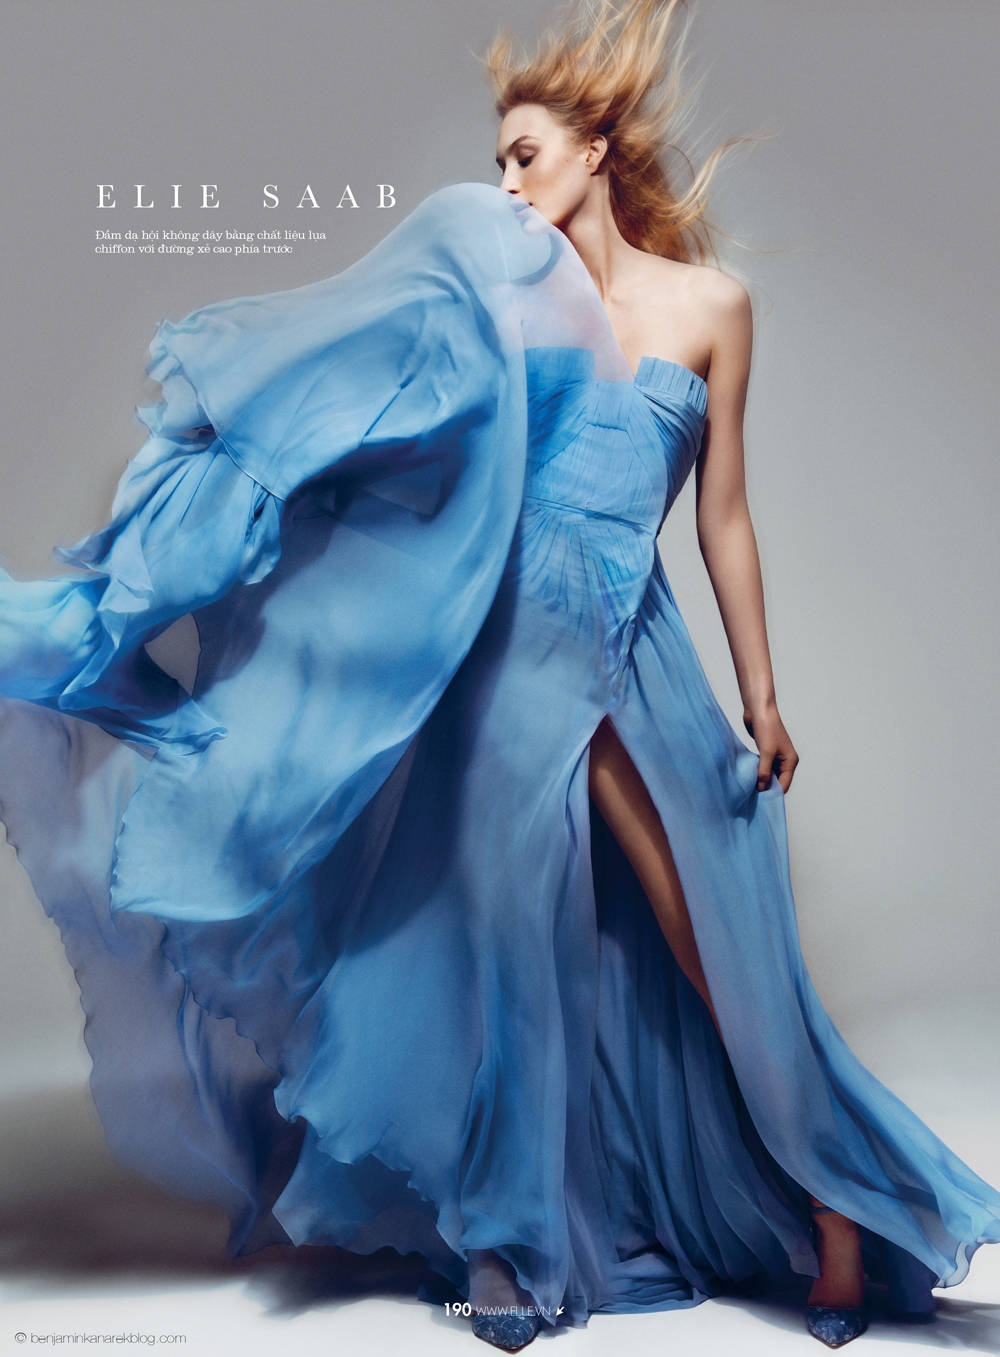 Dauphine McKee in Elie Saab Haute Couture © Benjamin Kanarek for ELLE Vietnam April 2014